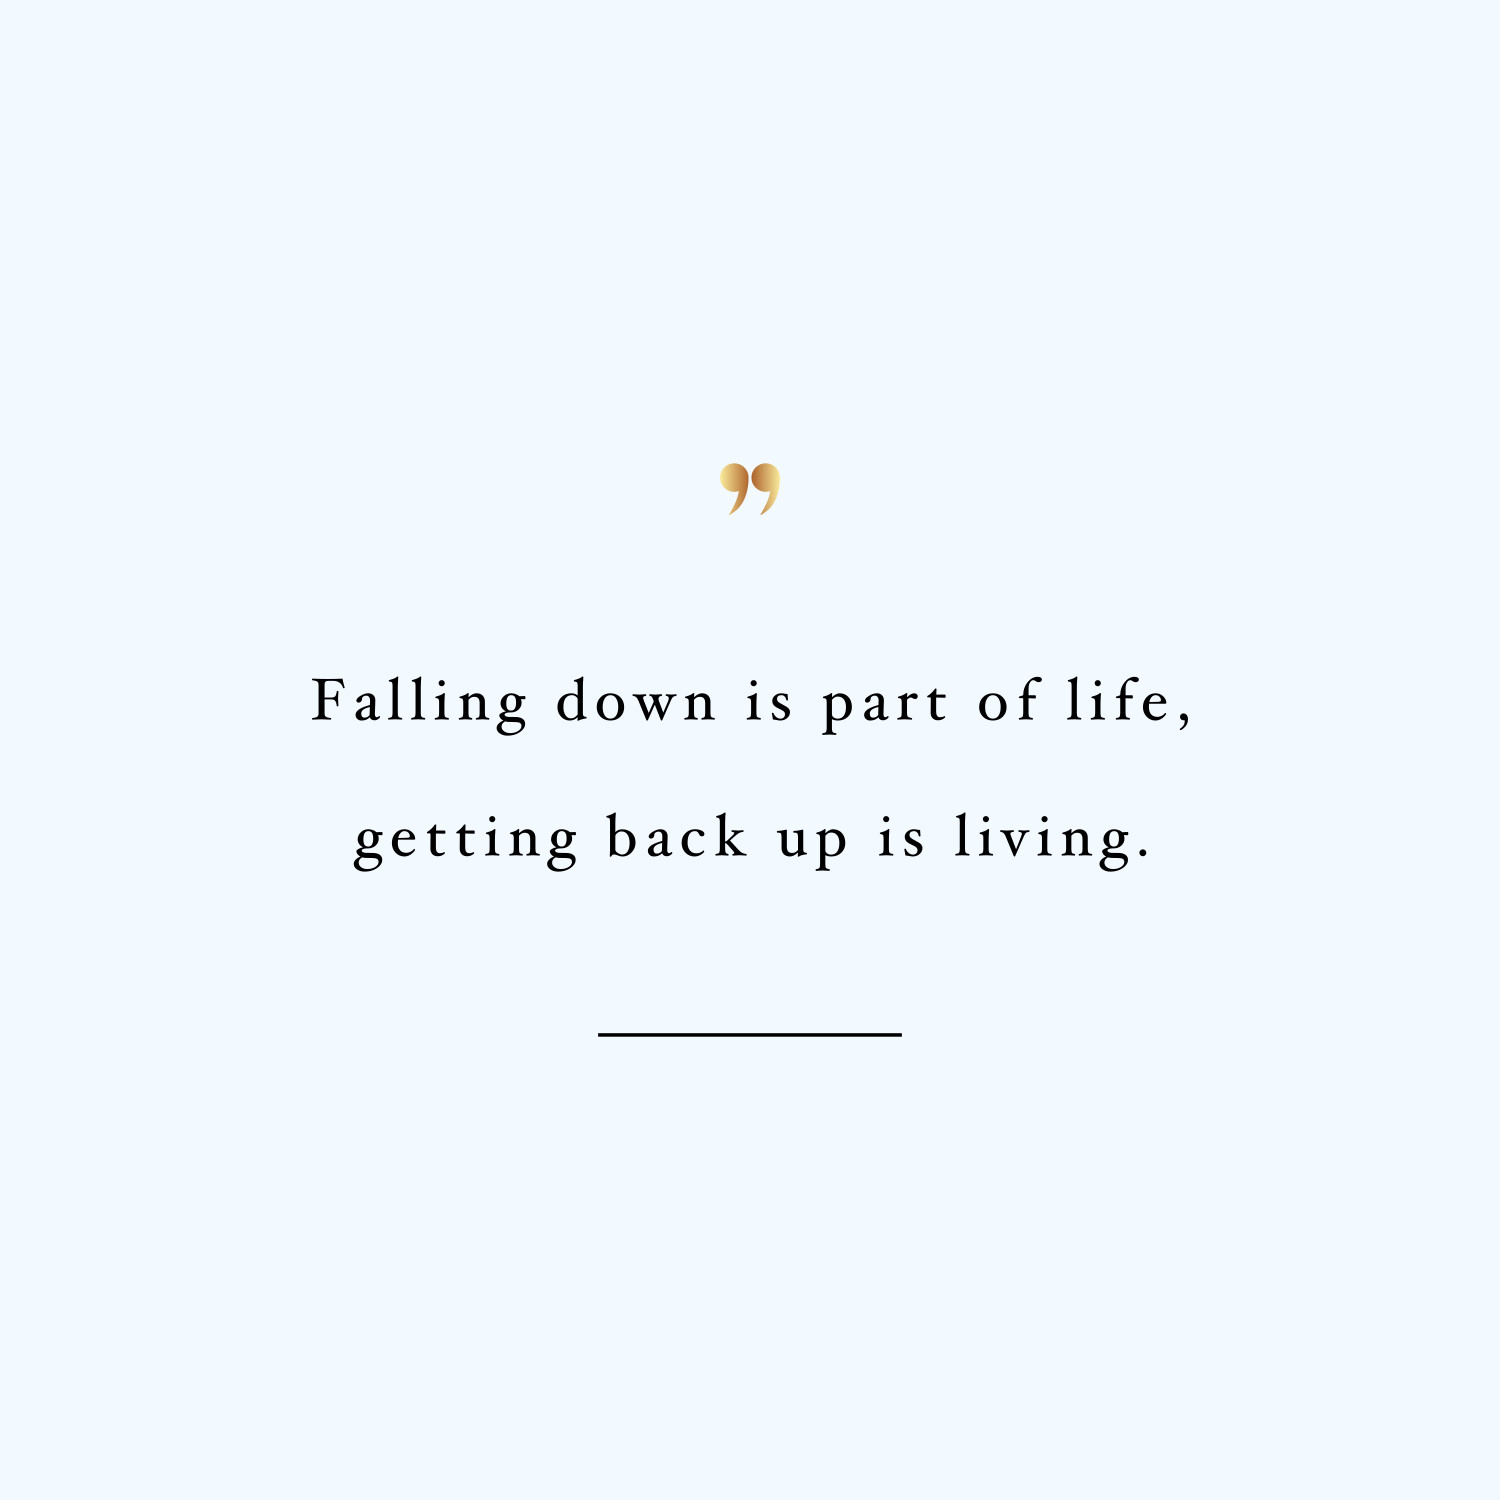 Never give up! Browse our collection of inspirational exercise and healthy eating quotes and get instant weight loss and fitness motivation. Stay focused and get fit, healthy and happy! https://www.spotebi.com/workout-motivation/never-give-up/